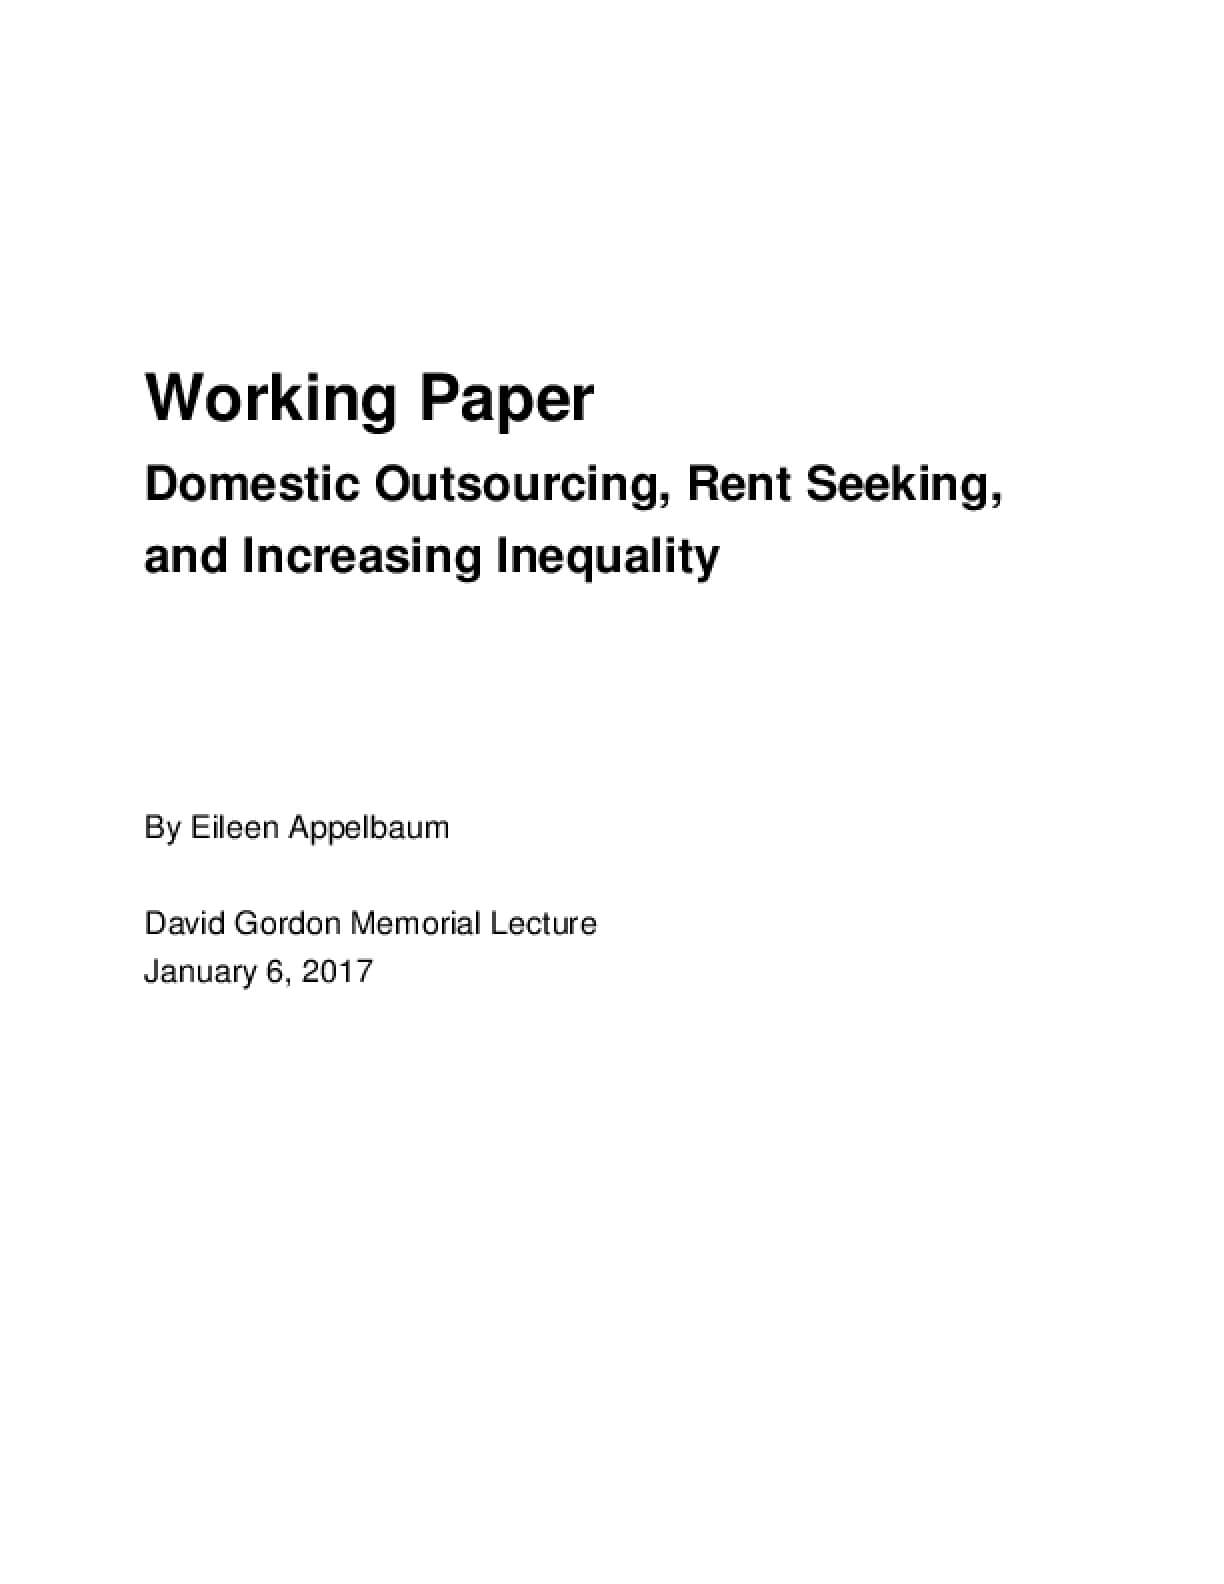 Domestic Outsourcing, Rent Seeking, and Increasing Inequality